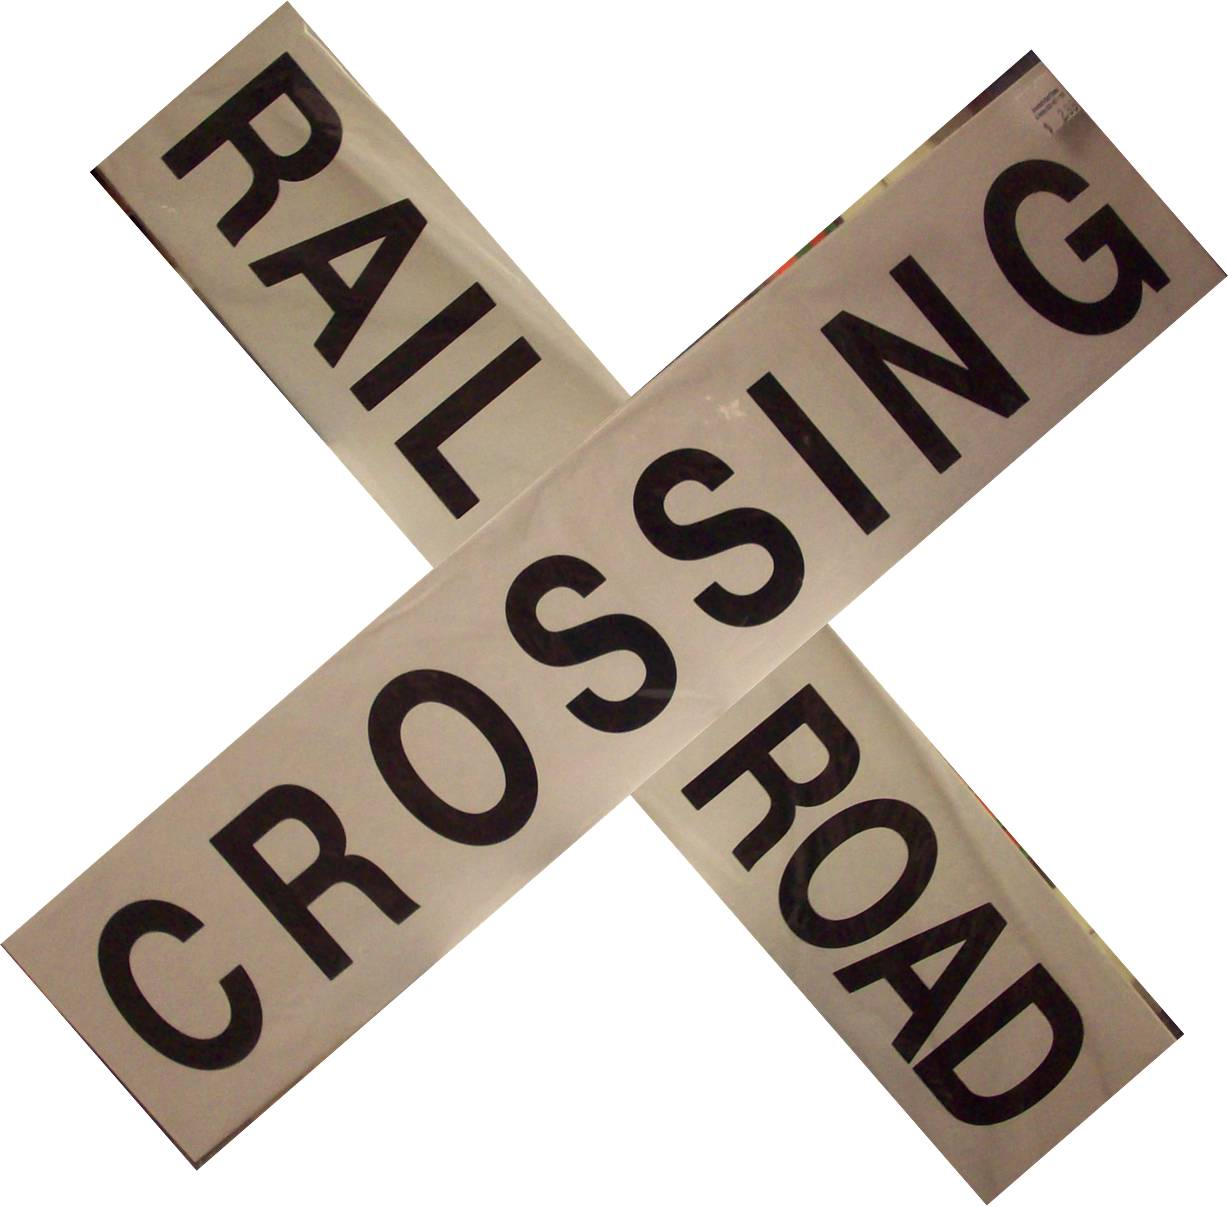 Toy railroad crossing videos, free atlas ho track plans ...